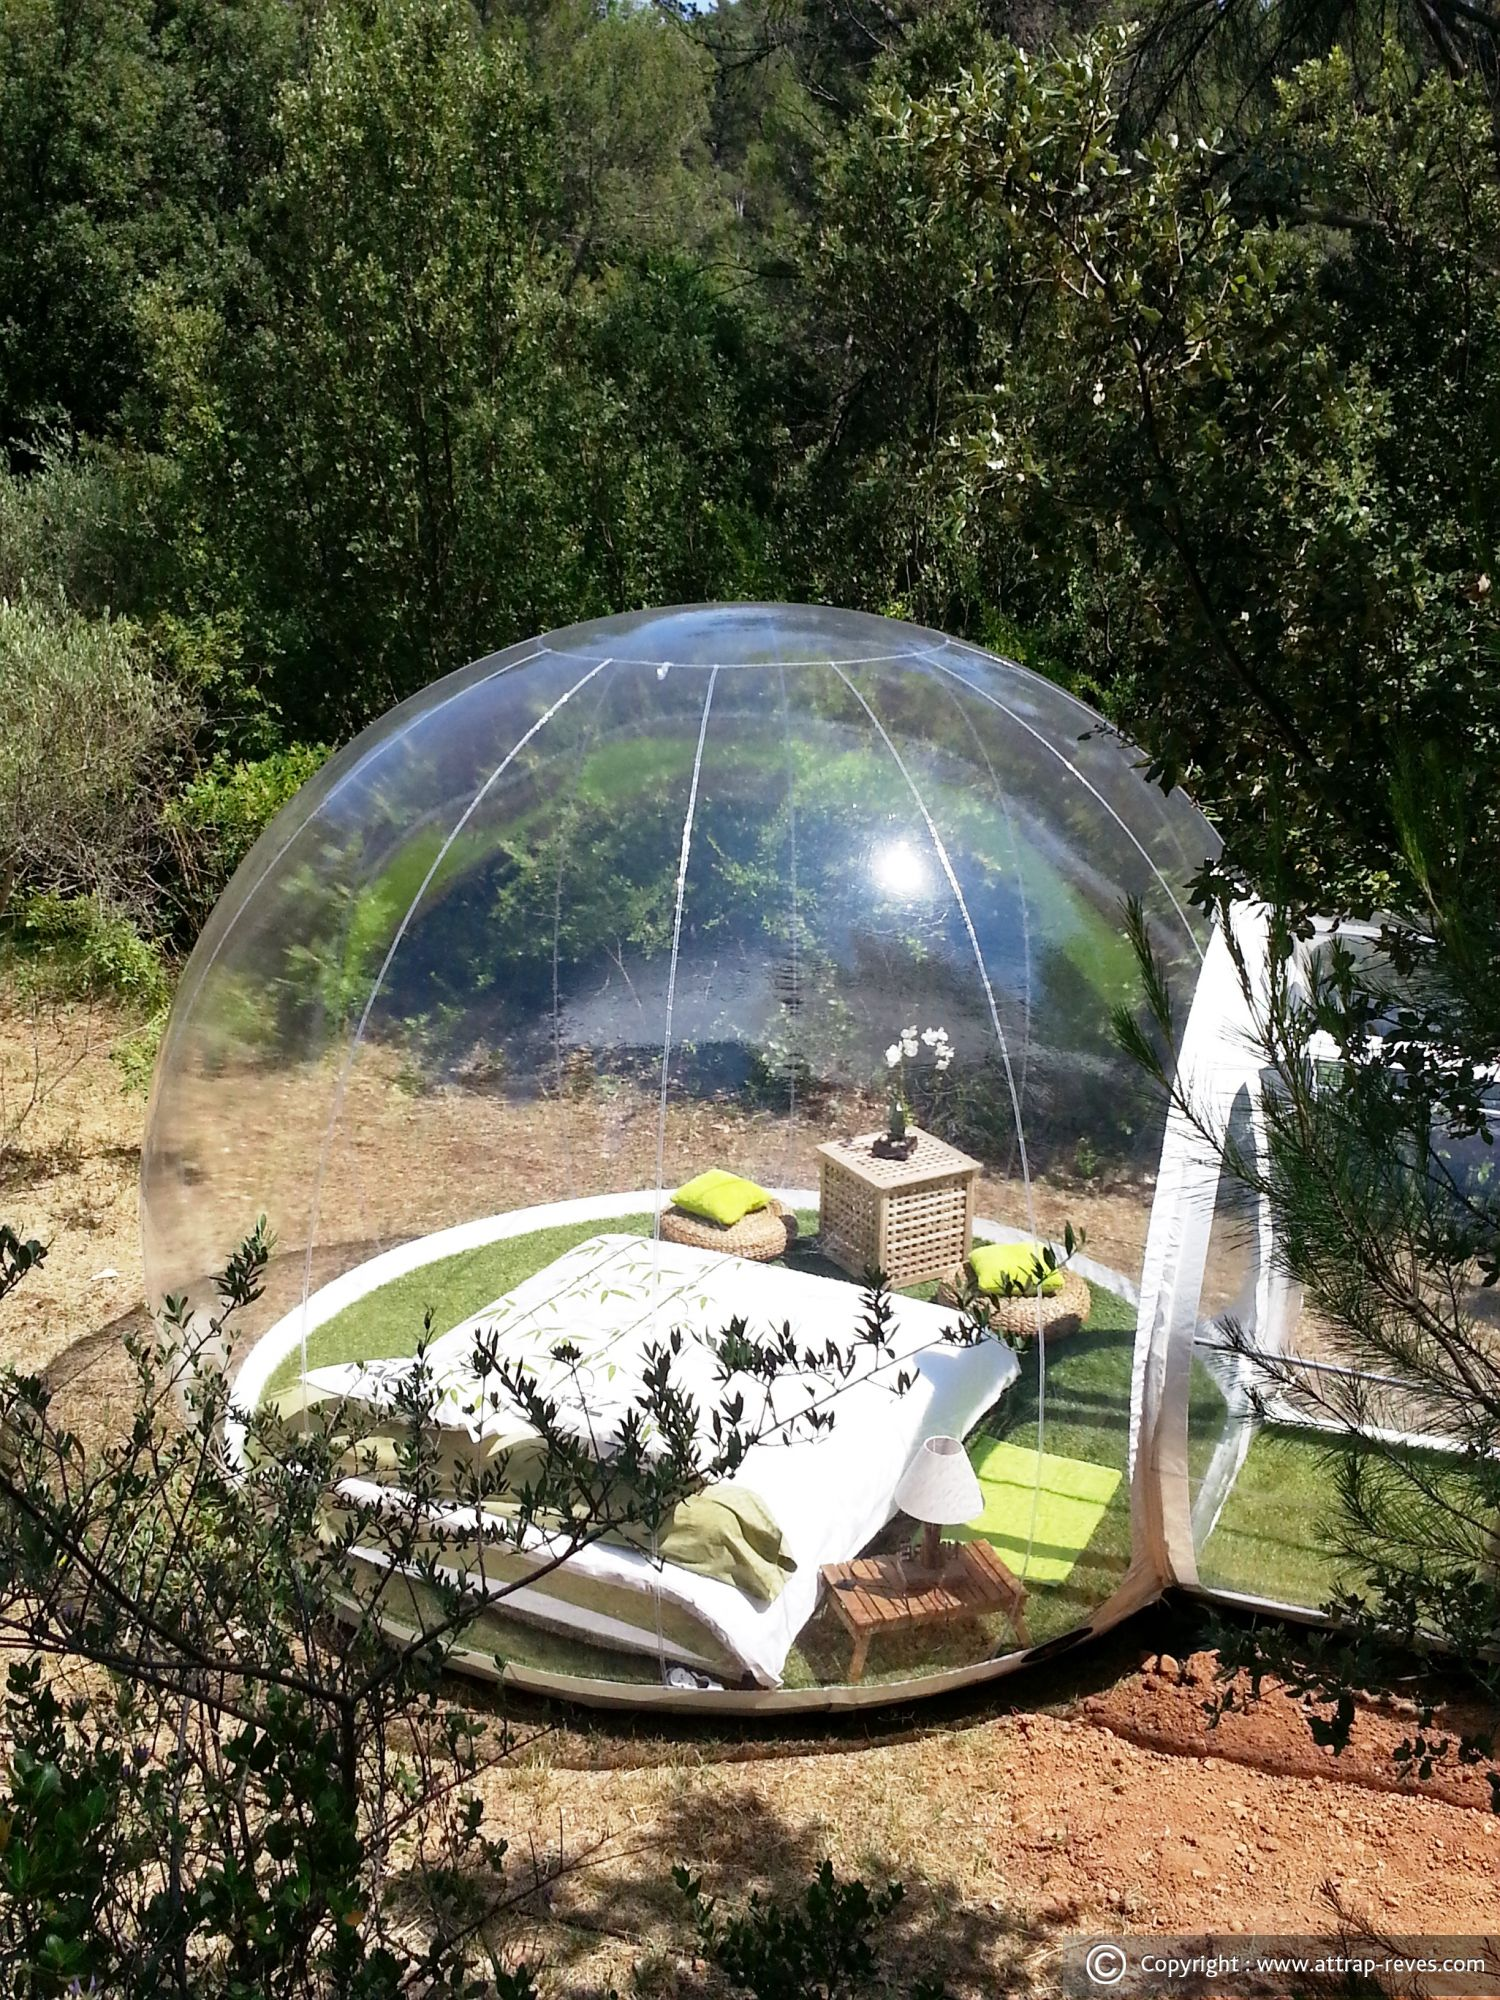 Sunday bucket list french bubble pod glamping getaway brigade Attrap reves hotel